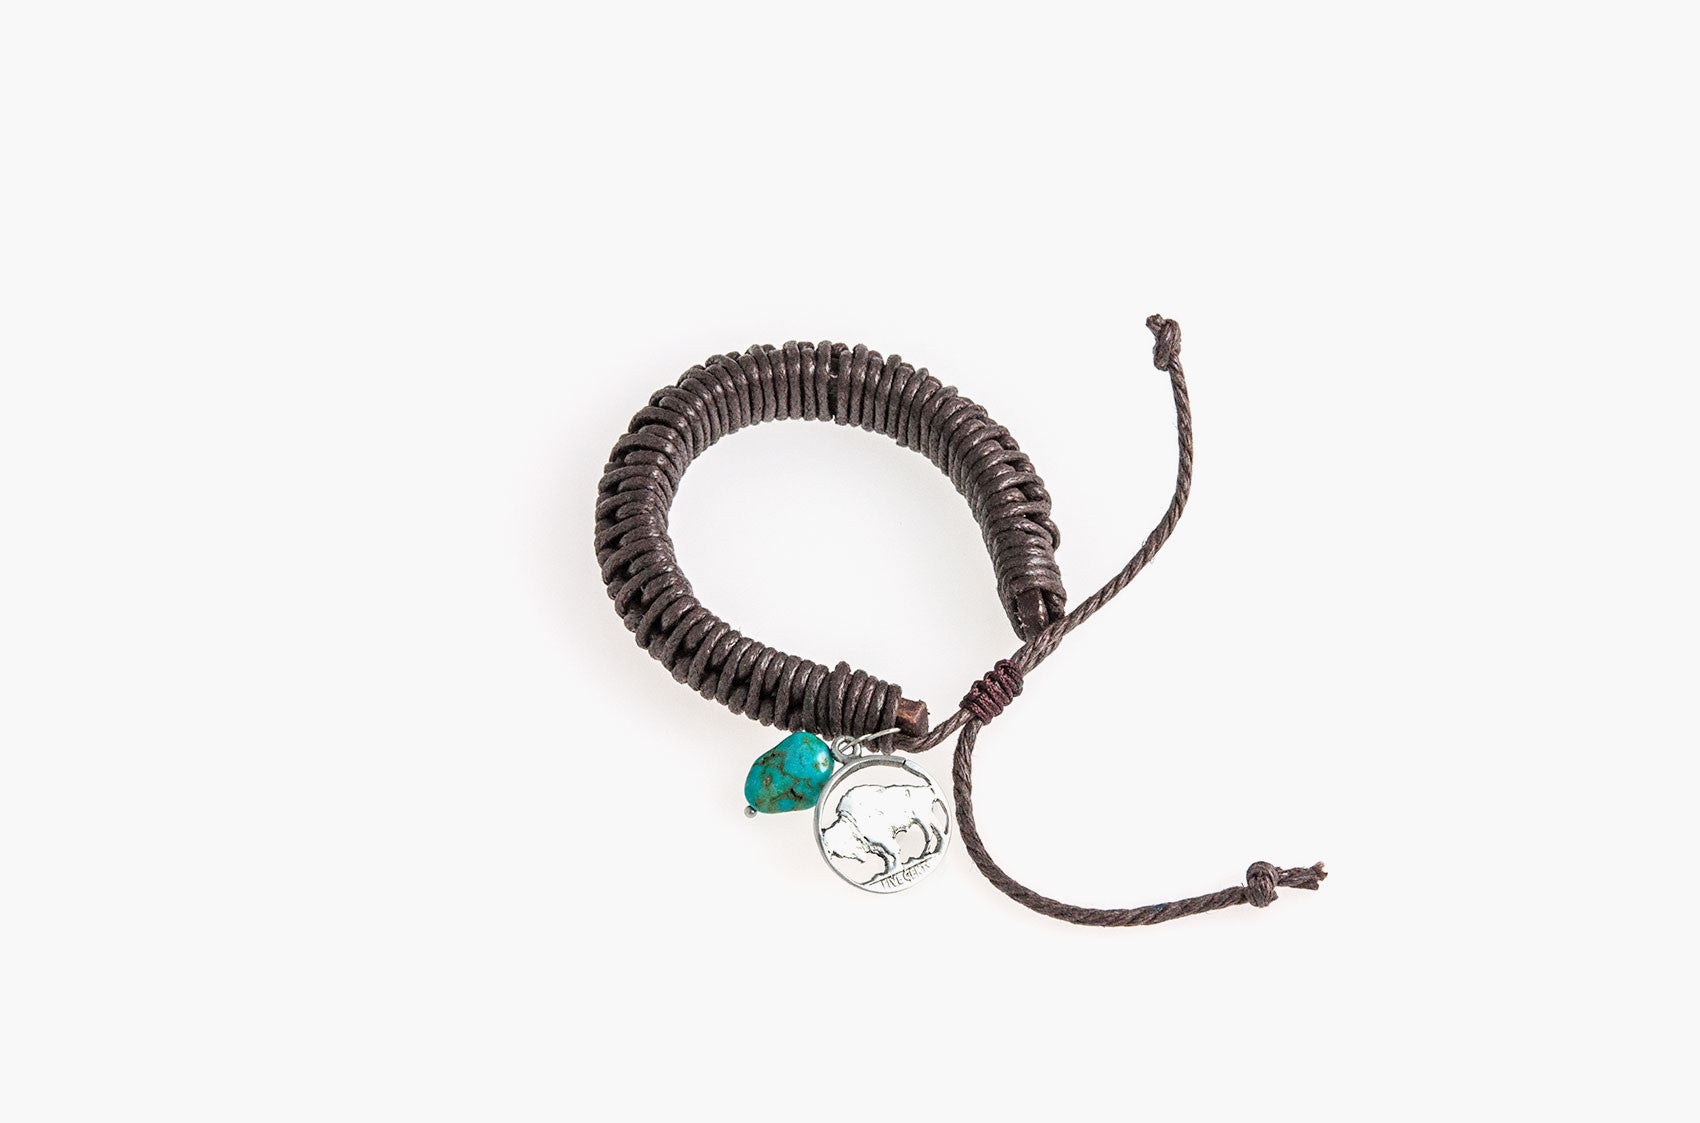 Brown leather and cord bracelet with turquoise